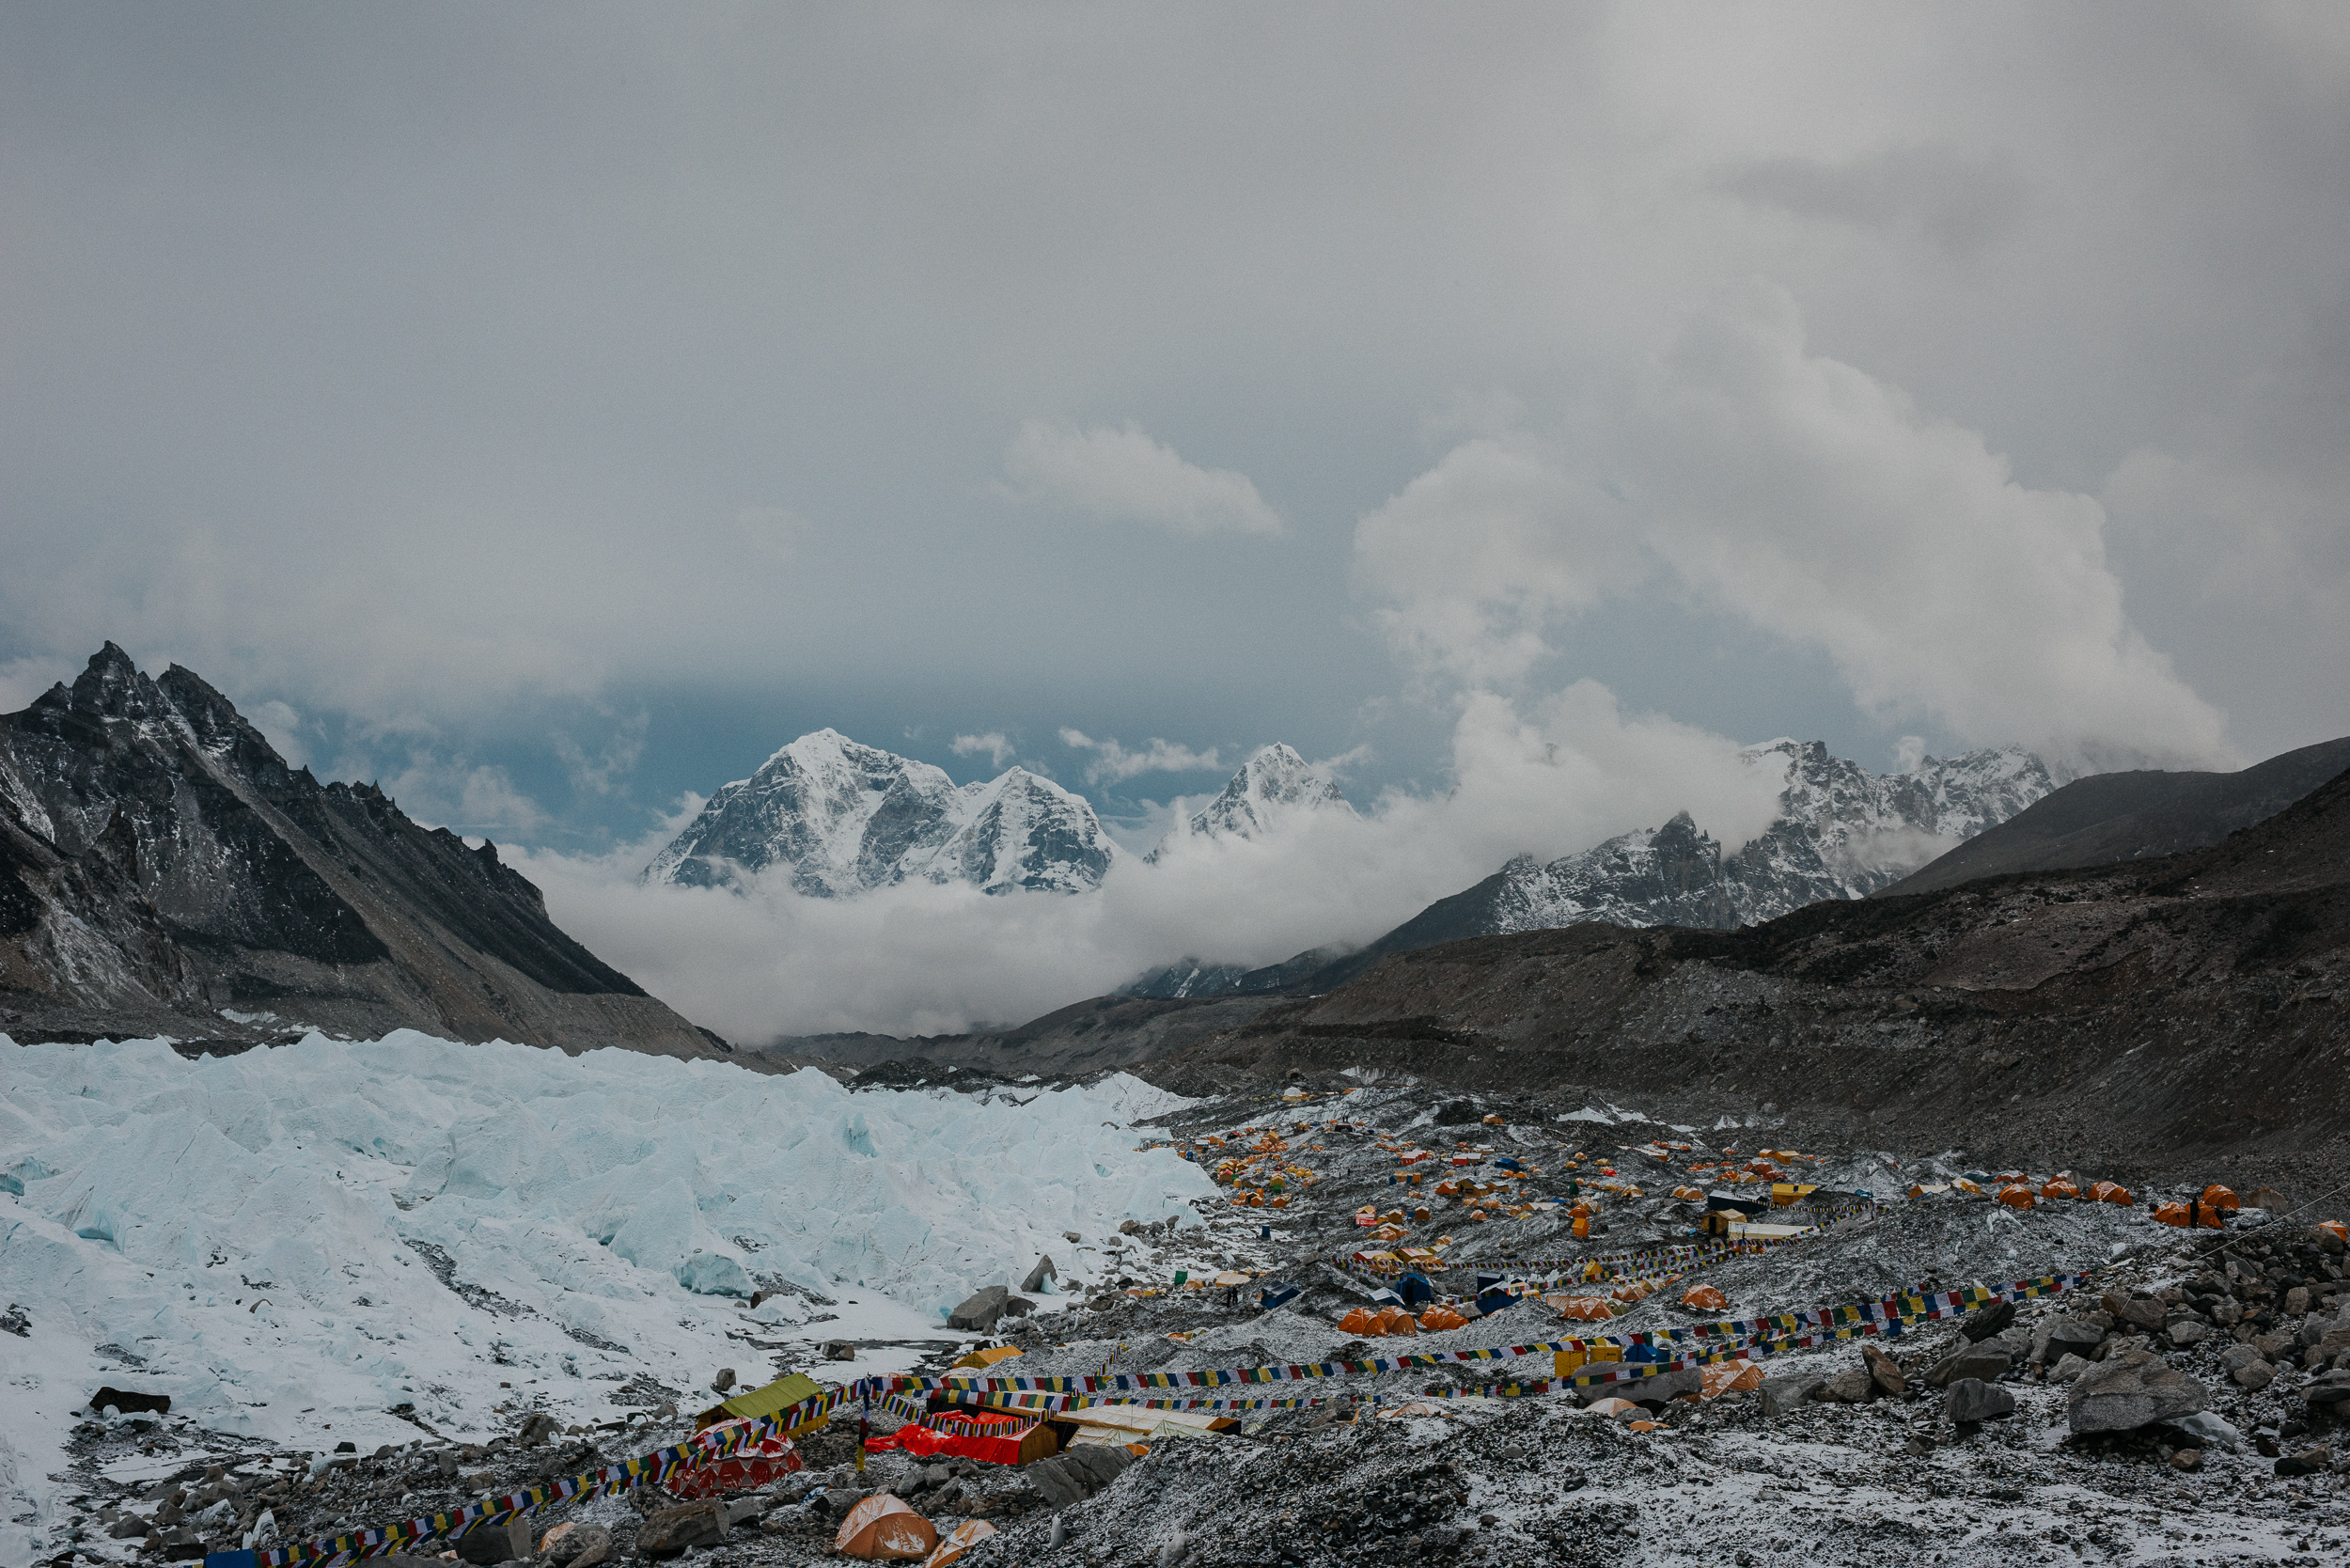 Nepal_EverestBaseCamp_2019_TaraShupe_Photography_DSC_4274.jpg